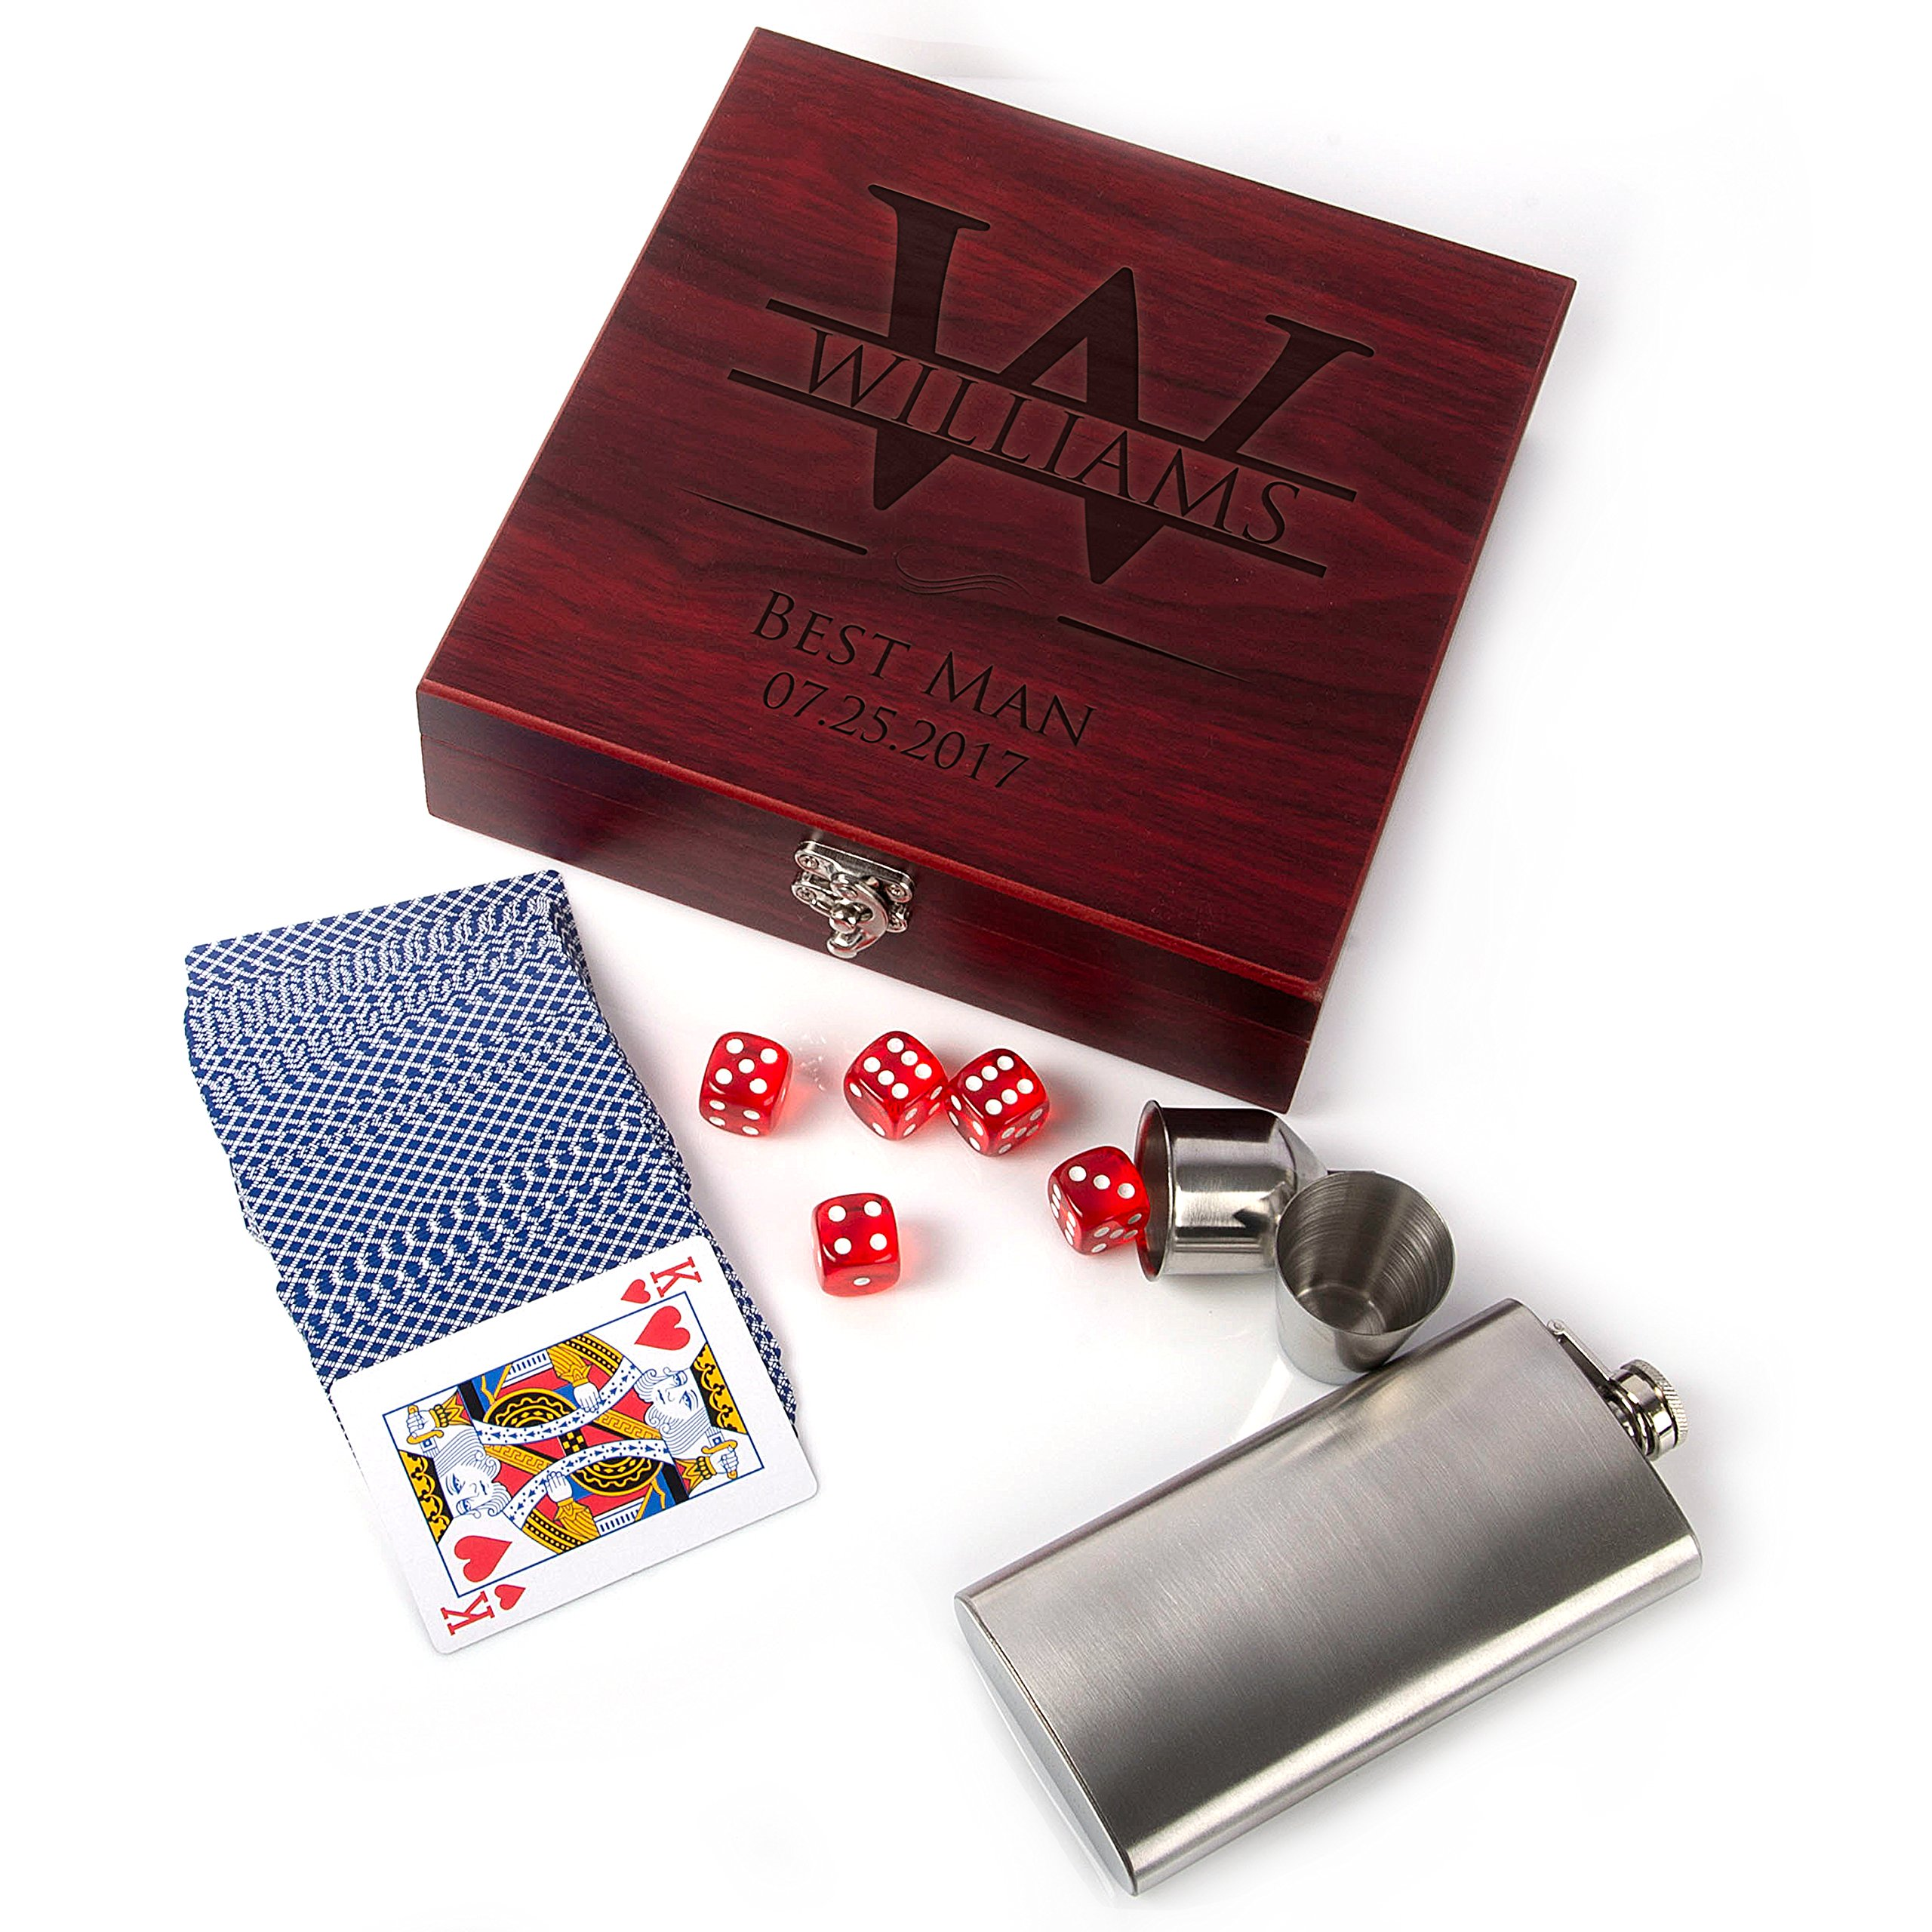 Premium Groomsmen Gifts for Wedding, Personalized Flask Set + Playing Card, Dice | Rosewood Finish Flask Gift Set - Groomsman Gift, Customized Groomsman Flasks,Wedding Favors